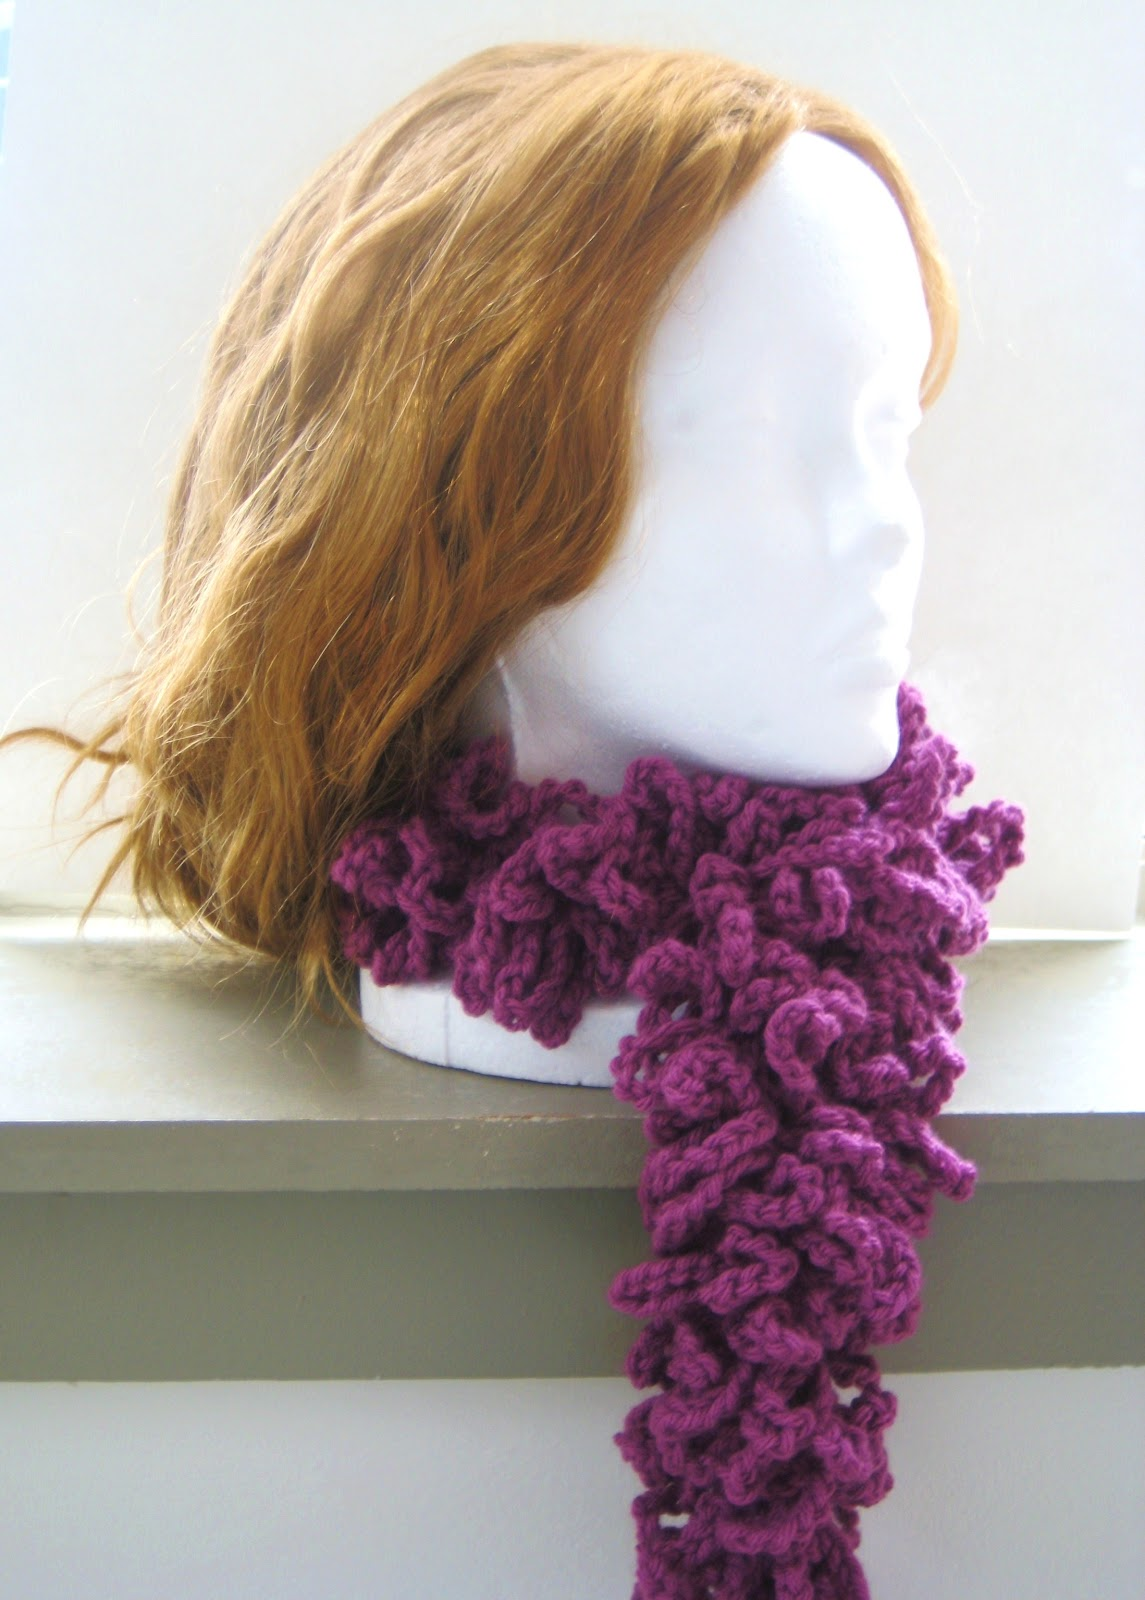 Free Crochet Pattern For Boa Scarf : Crochet Dreamz: A la mode Boa Scarf, Free Crochet Pattern